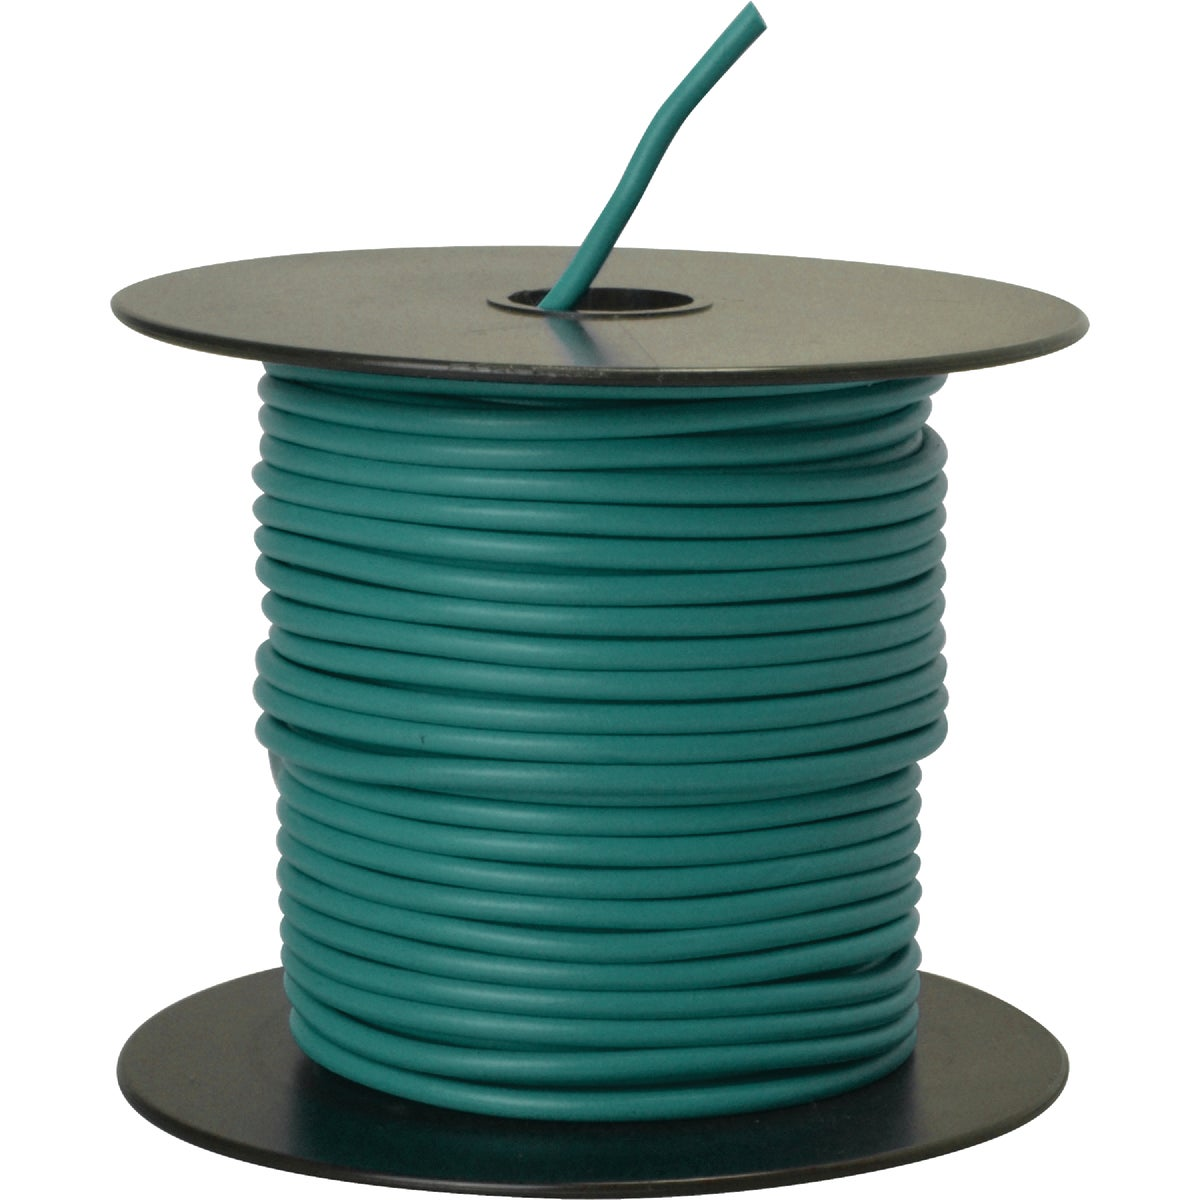 100' 14GA GRN AUTO WIRE - 14-100-15 by Woods Wire Coleman